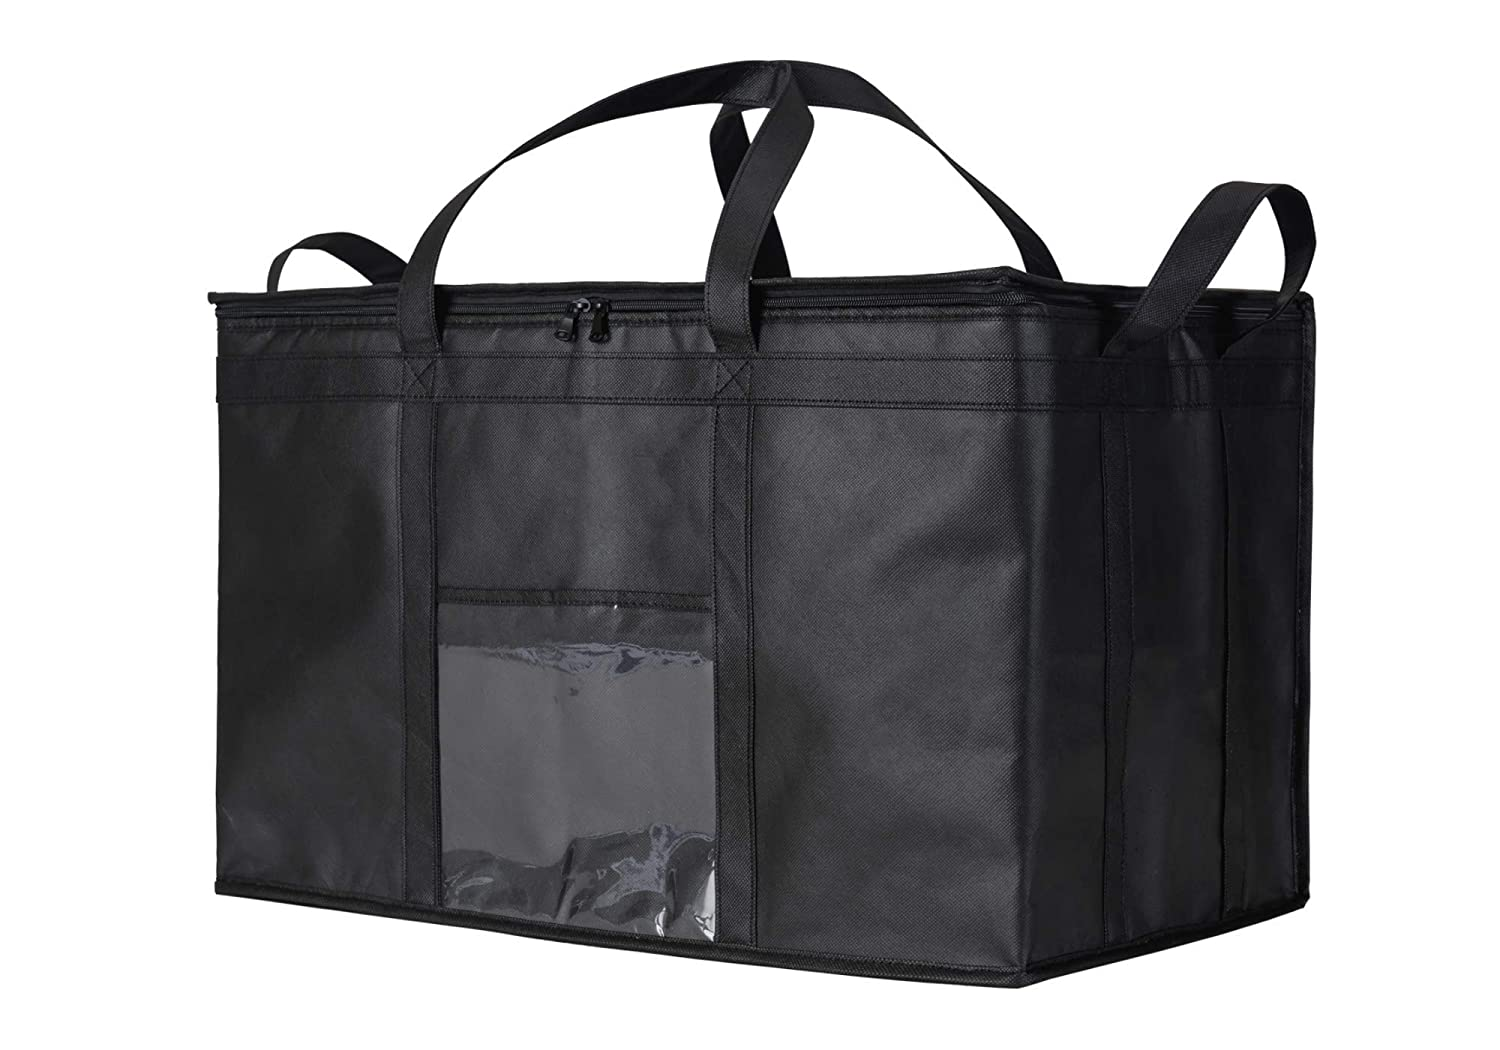 NZ Home XXL Food Delivery Bag - Hot & Cold Insulated Soft Cooler - Ideal for Uber Eats, Instacart, Doordash, Grubhub, Postmates, Restaurant, Catering, Grocery Transport - Superb Dual Zipper - Black